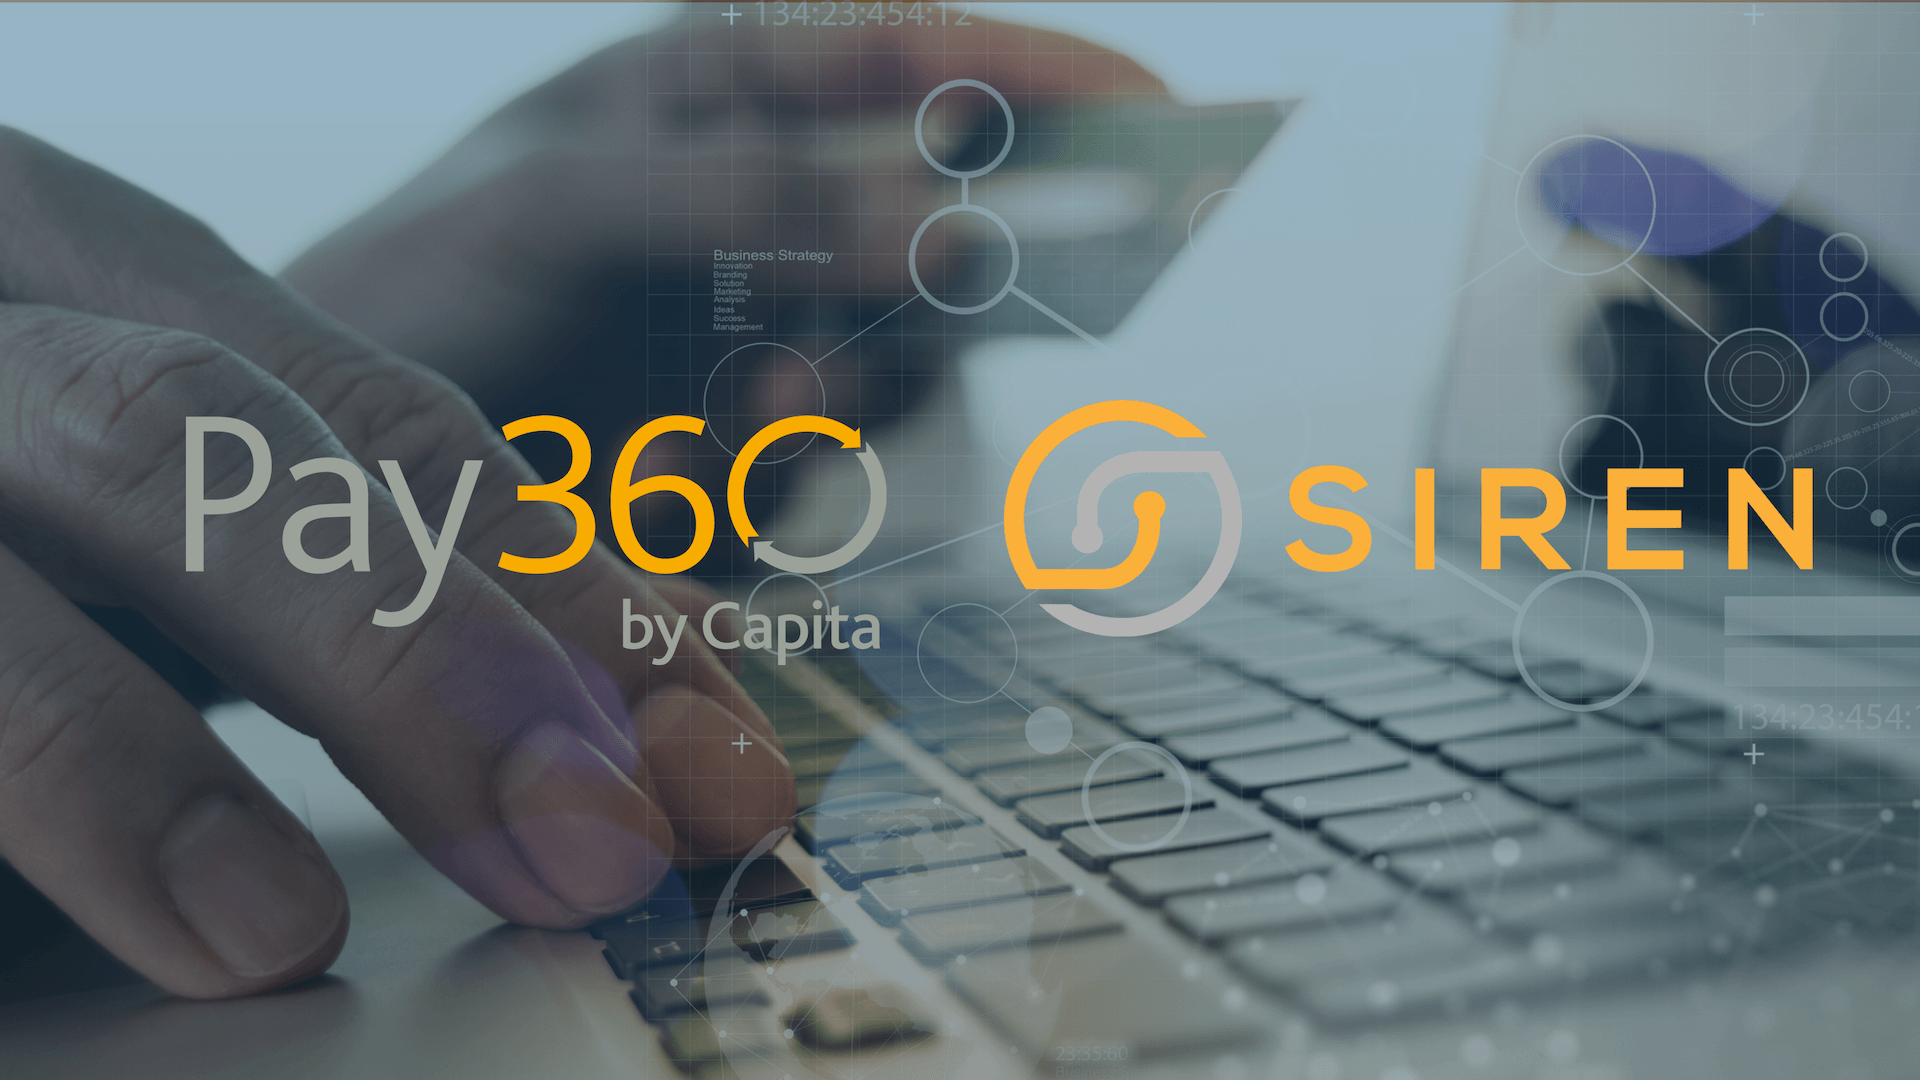 Pay360 by Capita uses the Siren Platform™